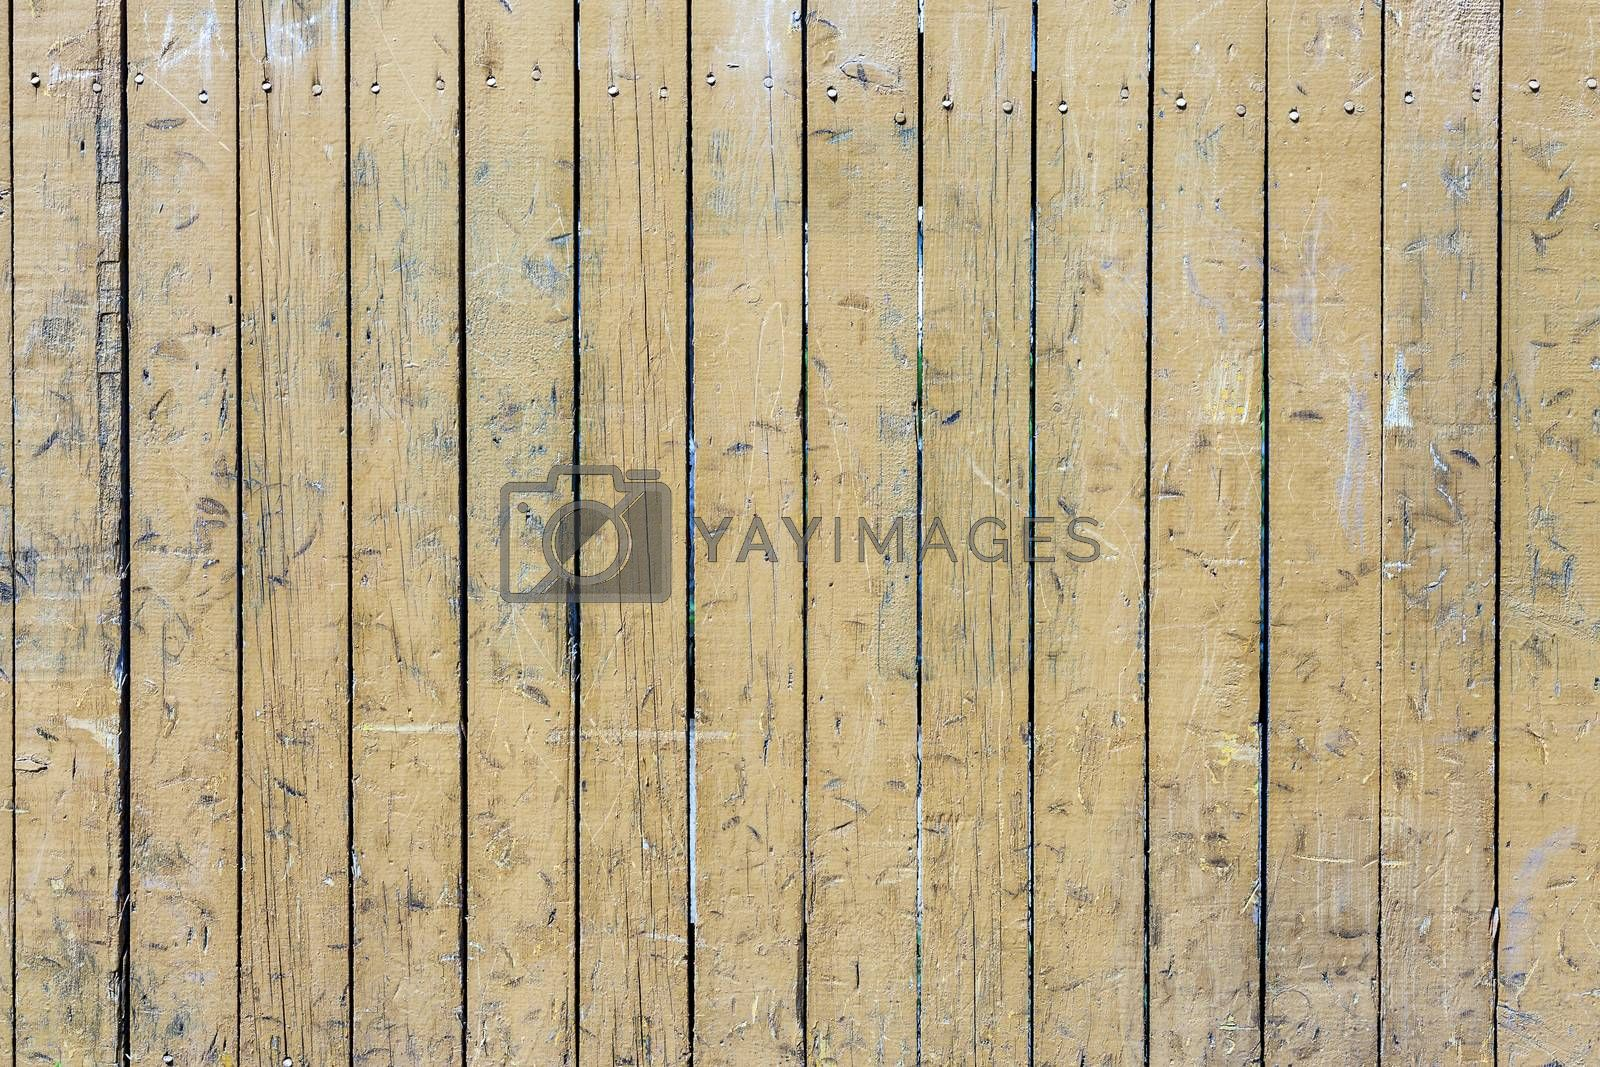 Royalty free image of Yellow Wooden Plank by H2Oshka